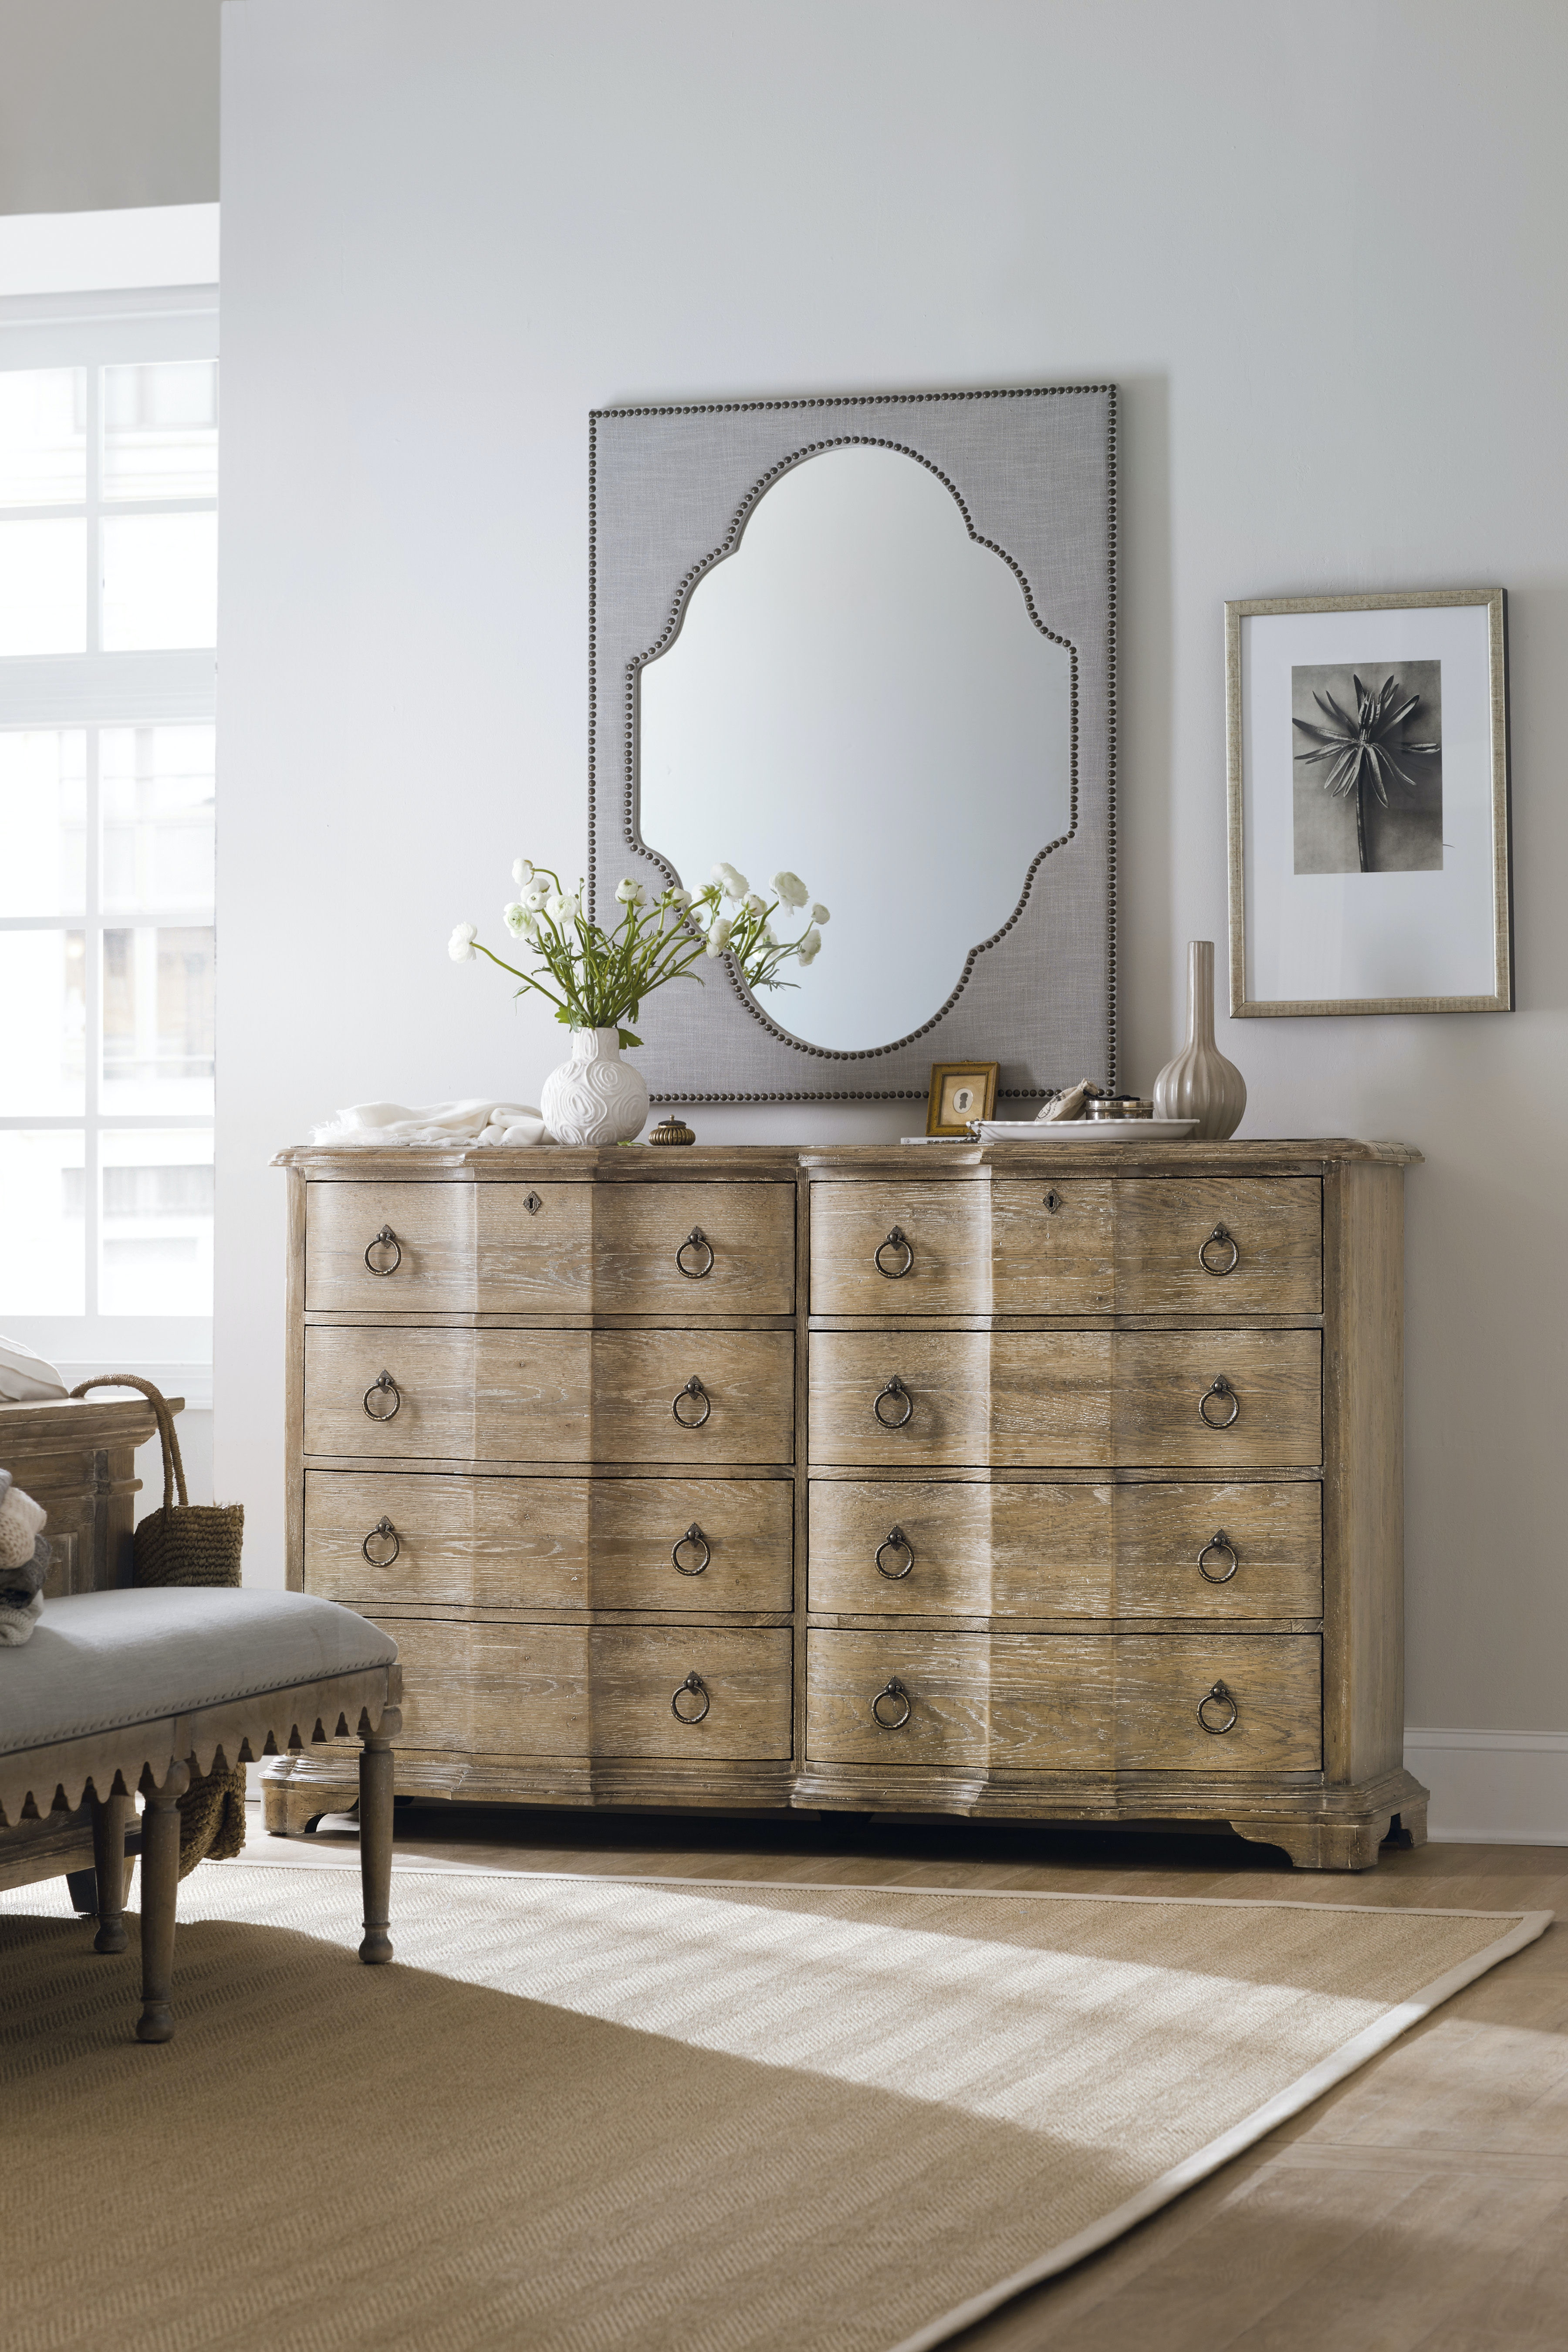 Hooker Furniture Boheme Nourmand Linen Wrapped Mirror HS575090008GRY From  Walter E. Smithe Furniture + Design